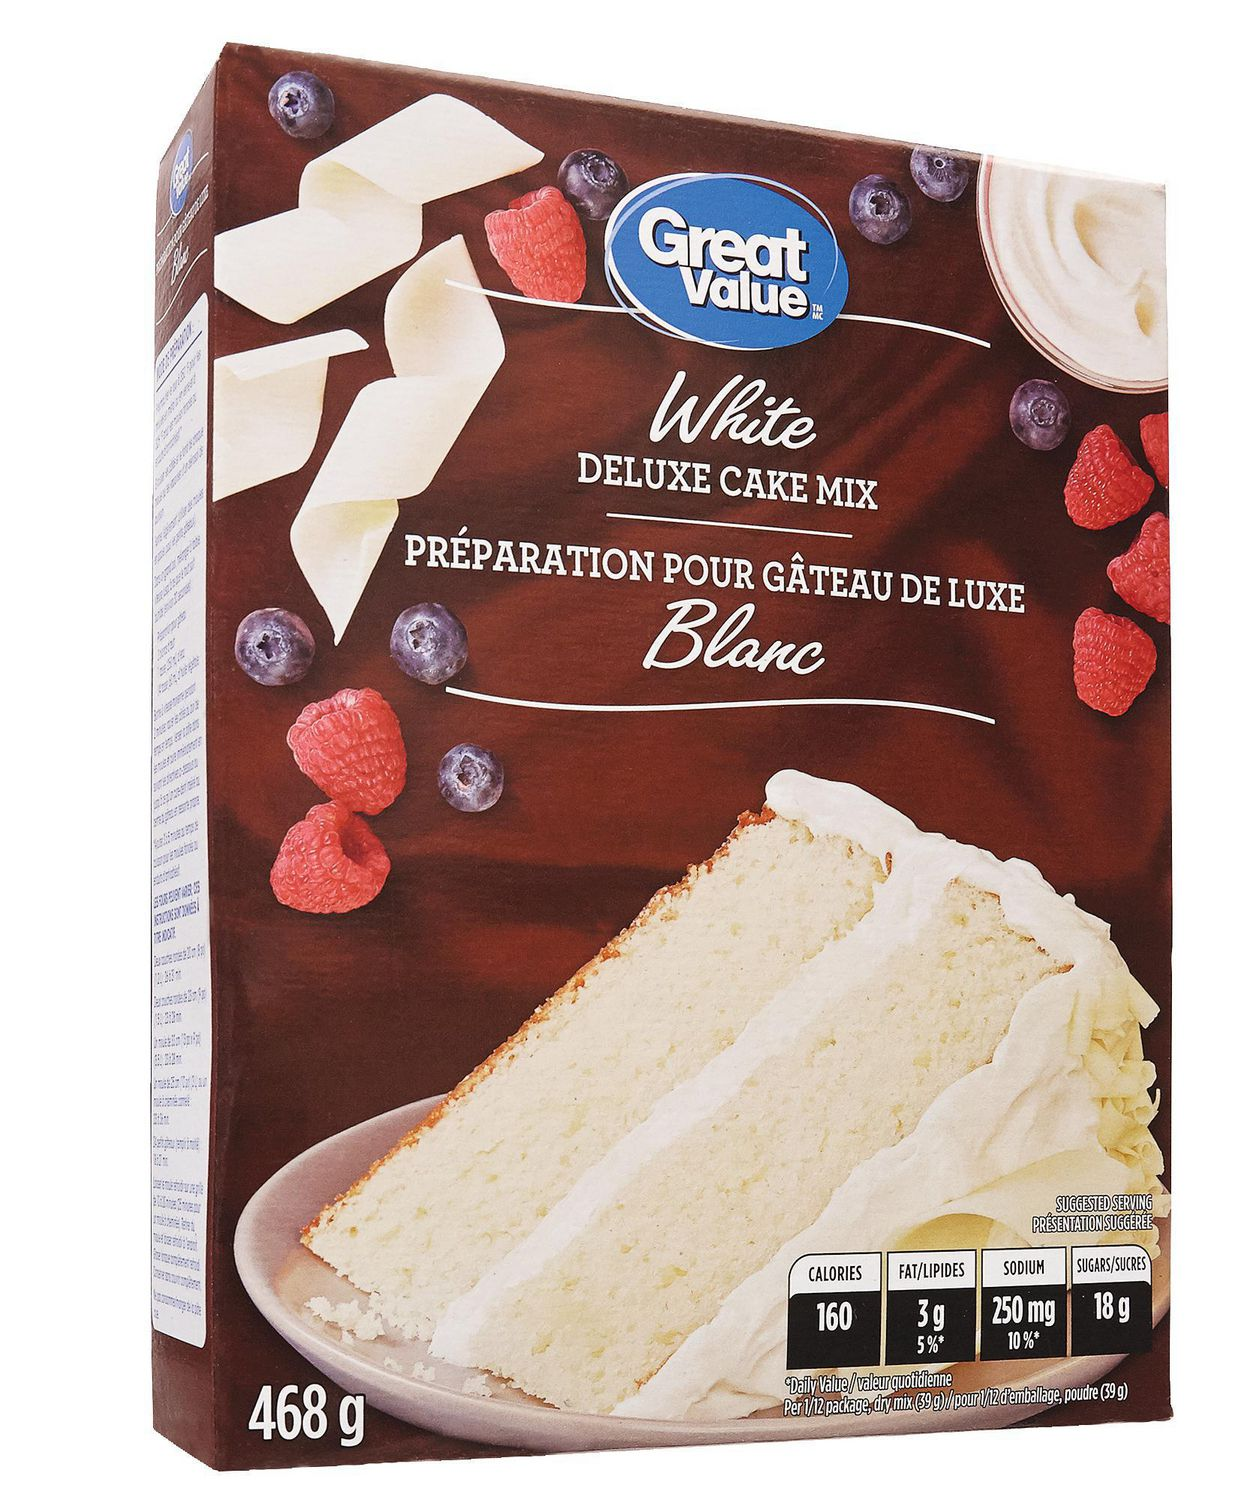 What Can I Add To White Cake Mix